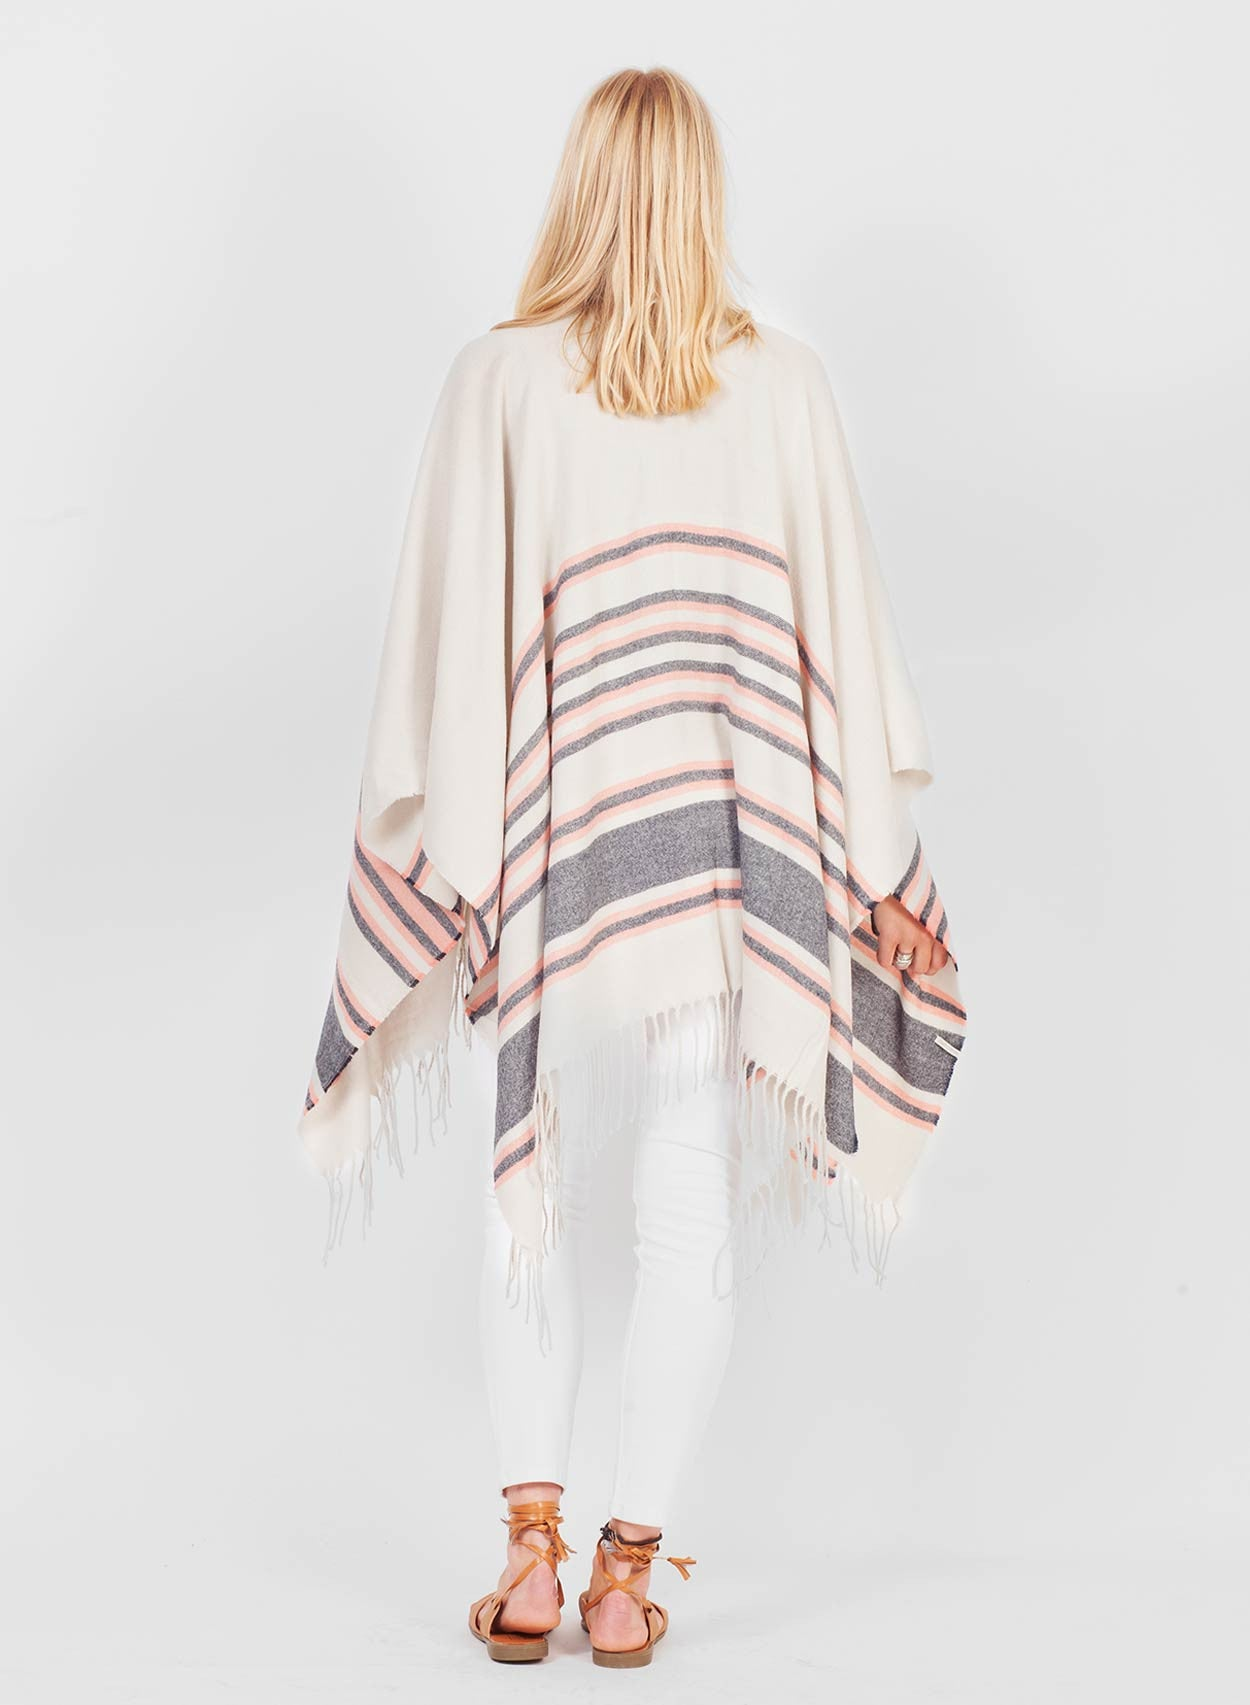 Super Soft White Blanket Cape - LoveClothing.com - 1